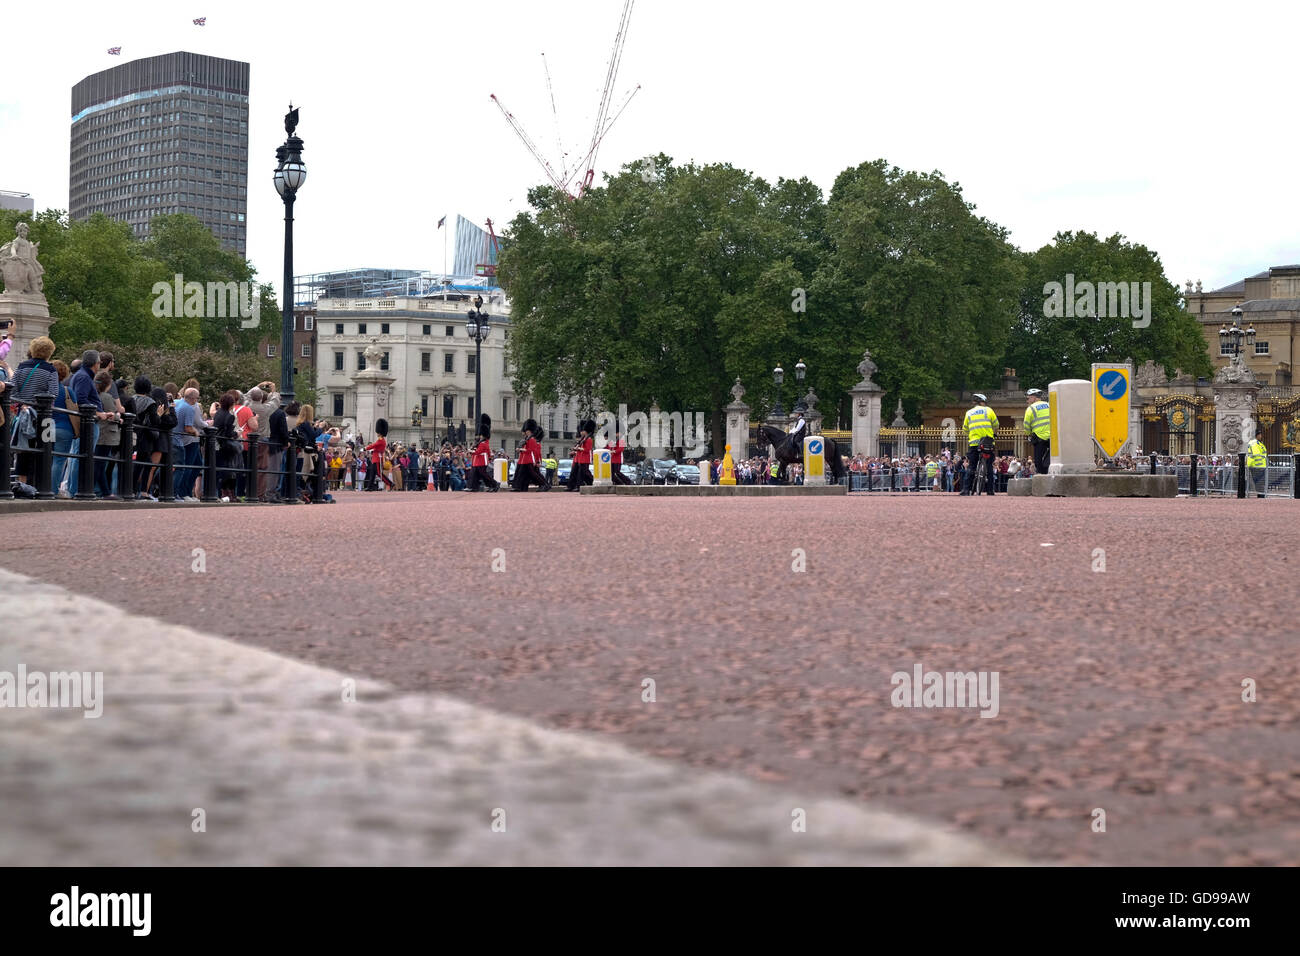 A Road Level View From Victoria Memorial Circle Of Soldiers Marching Off After Changing The Guard At Buckingham Palace